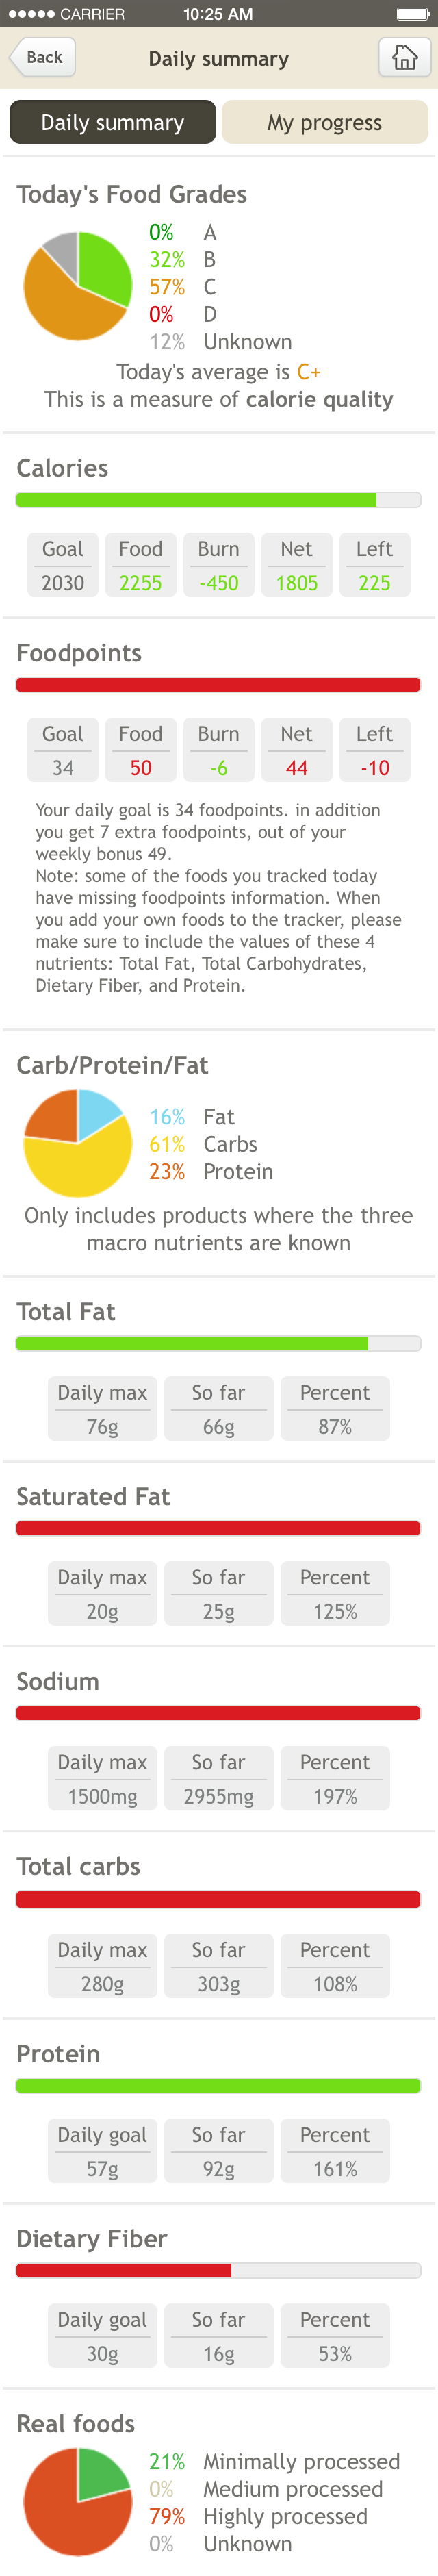 McDonalds Diet Nutrient Analysis on Fooducate